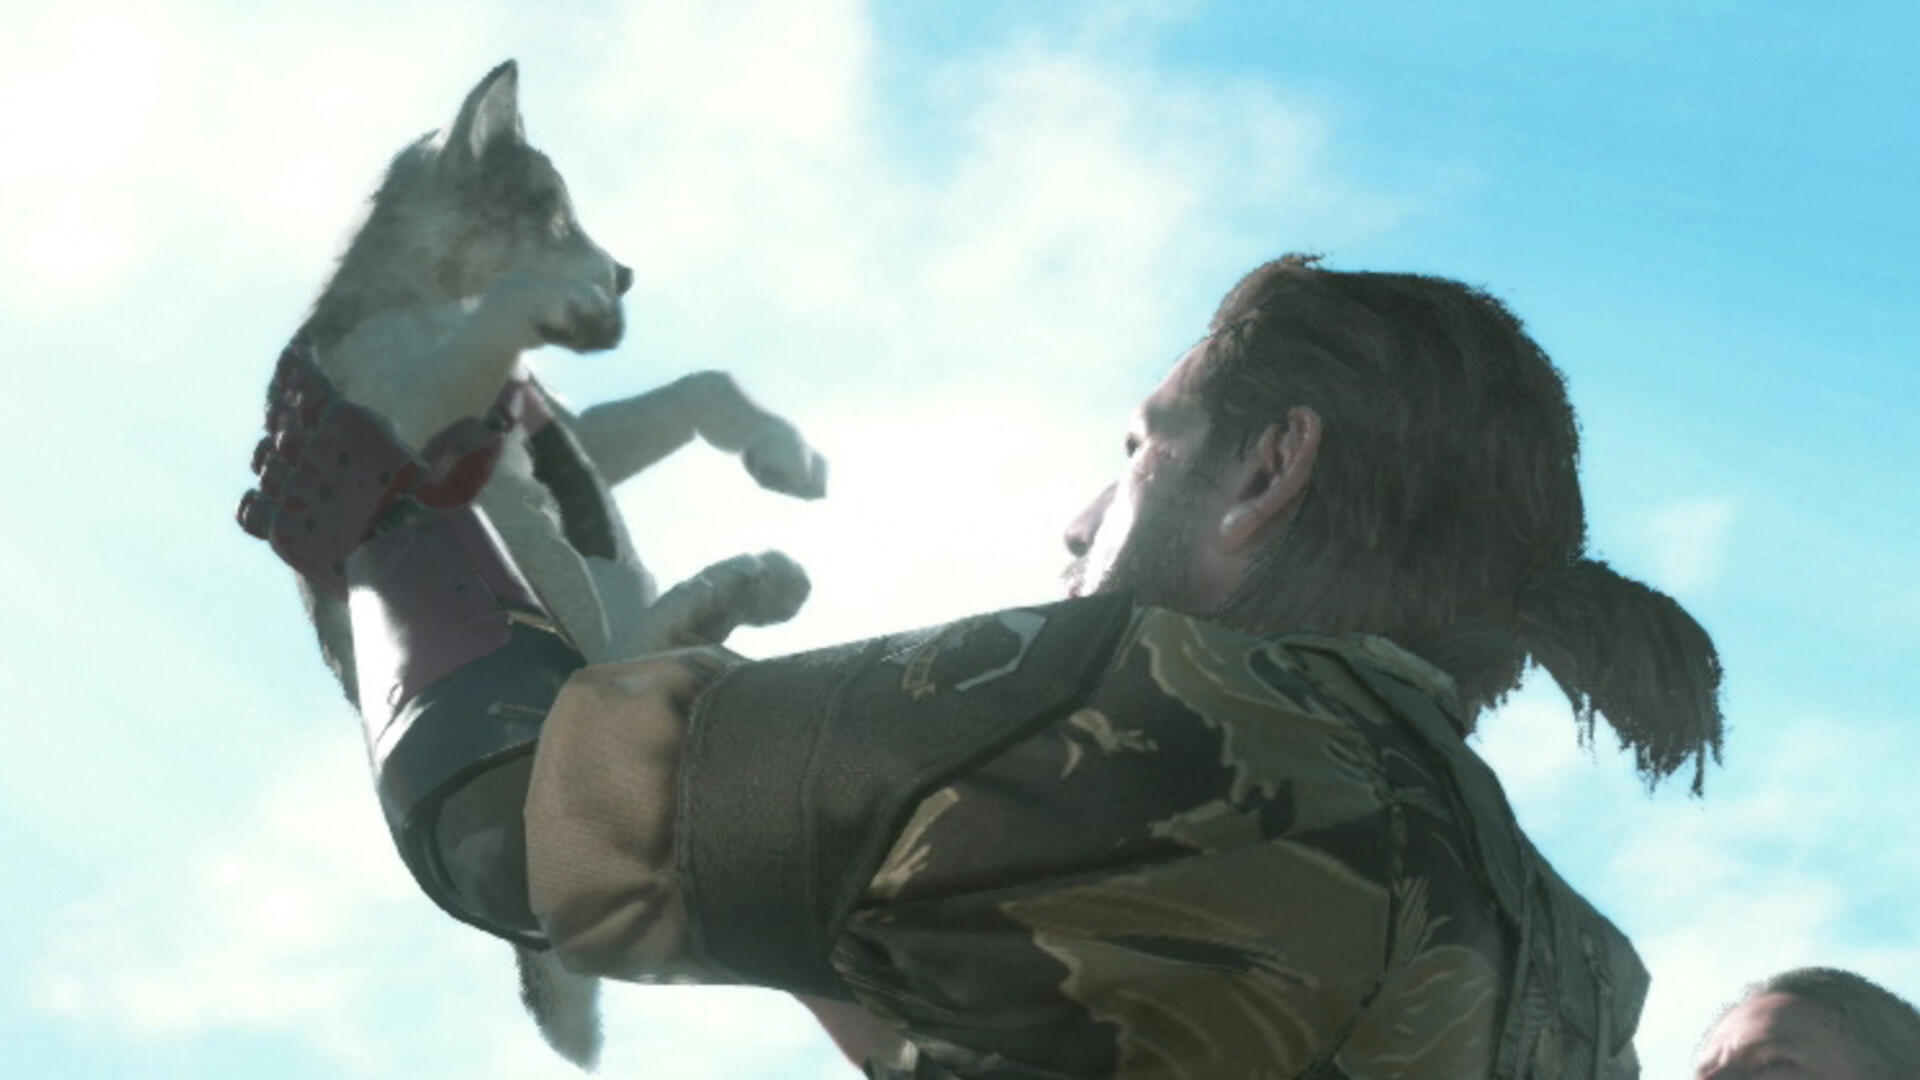 Metal Gear Solid 5 - Over the Fence Mission Guide - Mission 5 - Extract the Prisoner